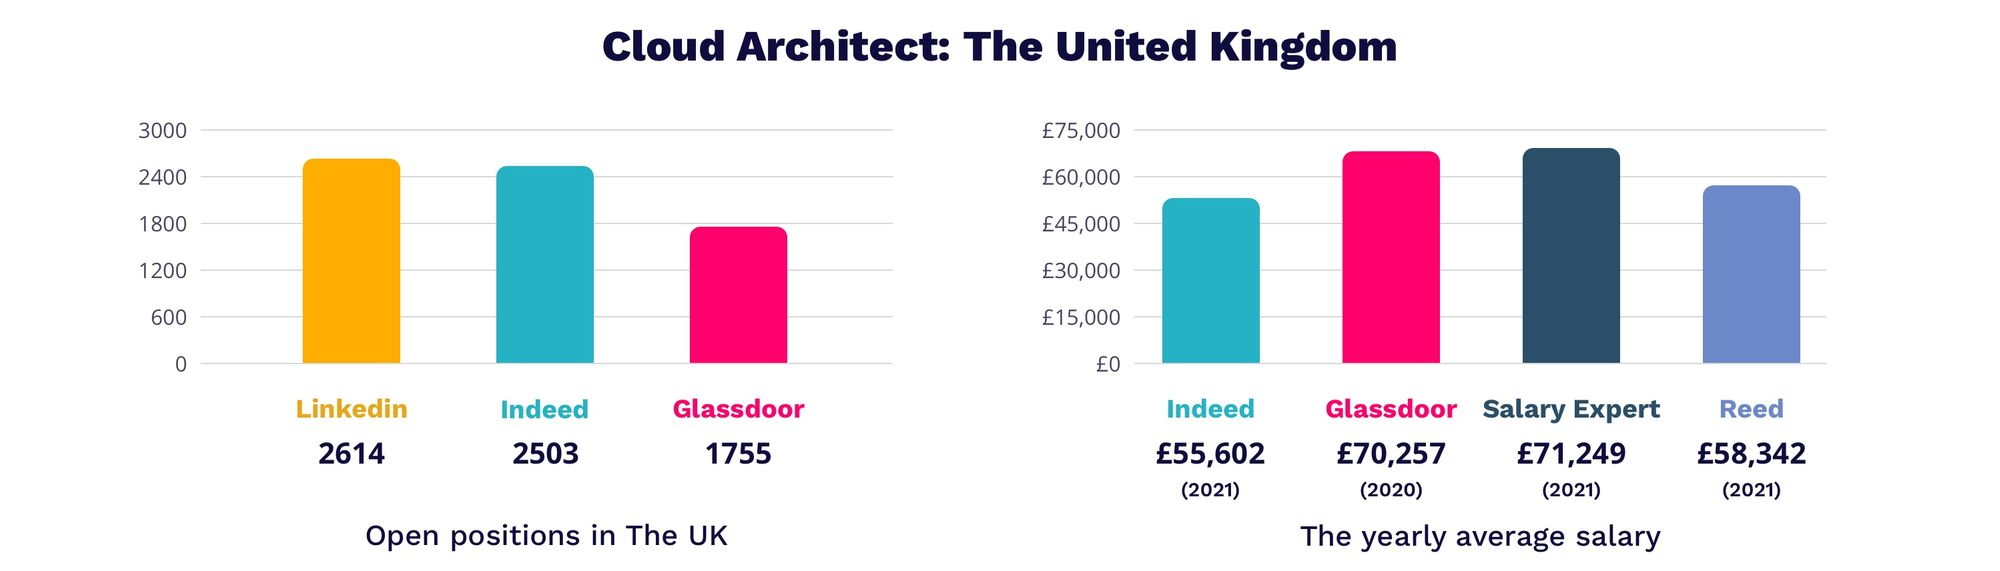 Cloud Architect salary in UK 2021   MagicHire.co